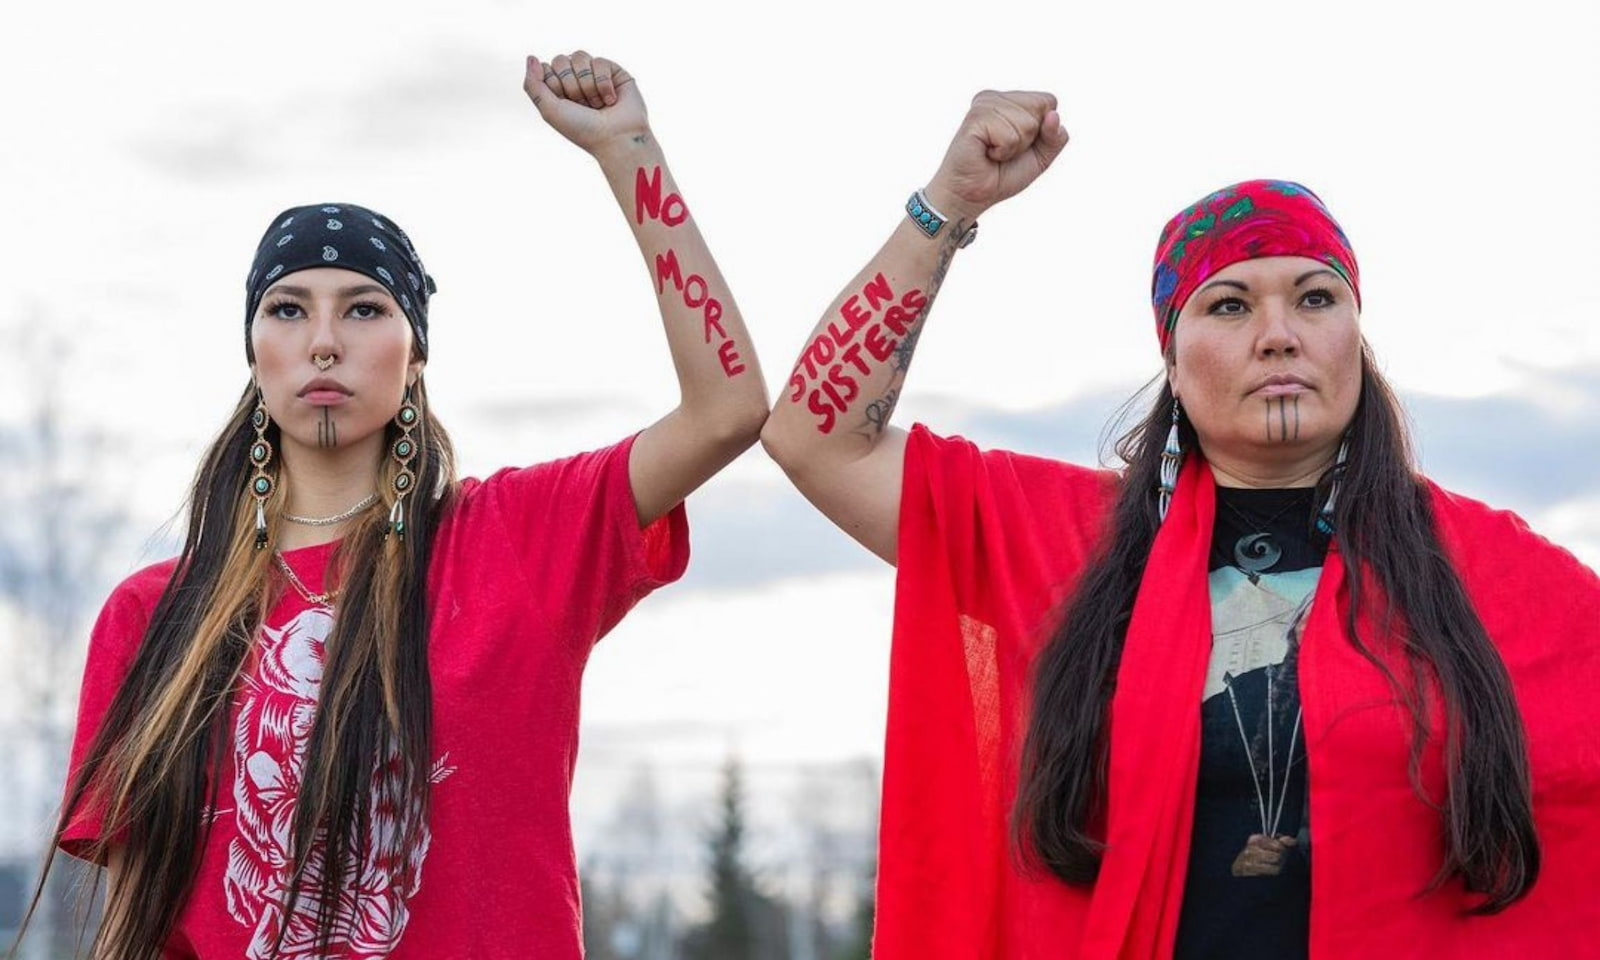 On Indigenous Women, Girls and Two-Spirits' Disappearances